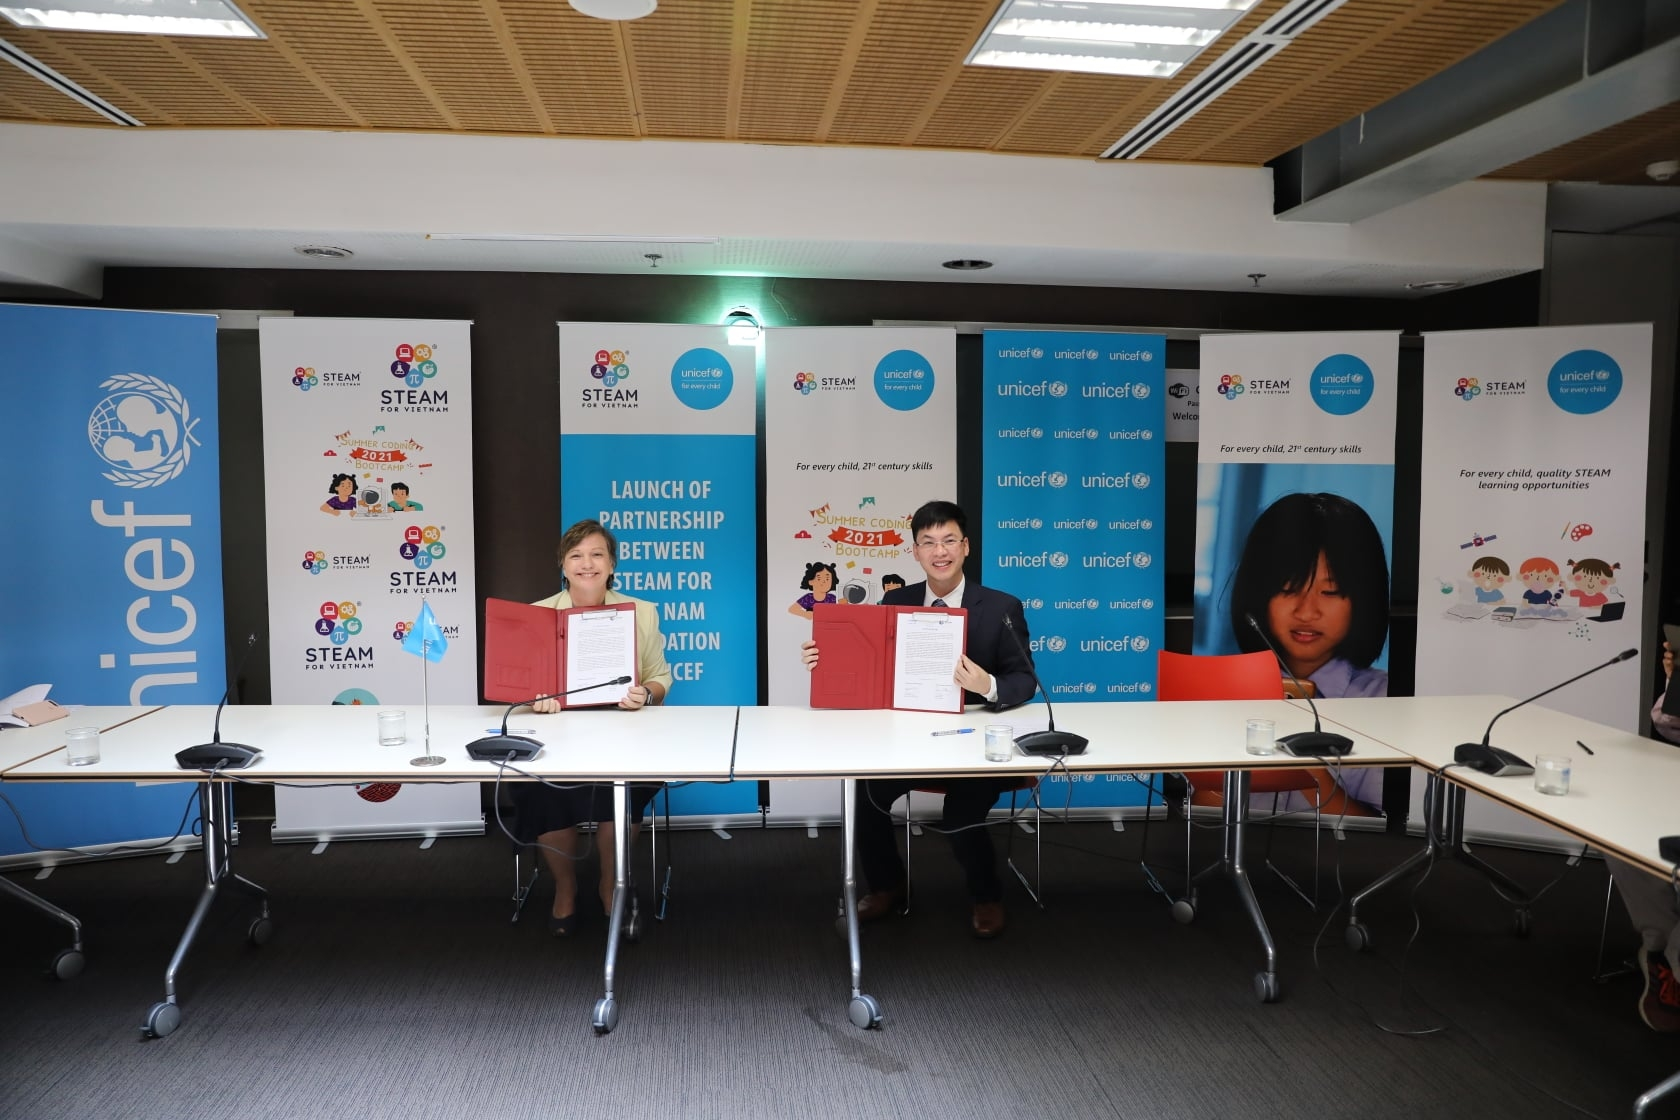 UNICEF, US non-profit organization brings STEAM learning opportunities to children